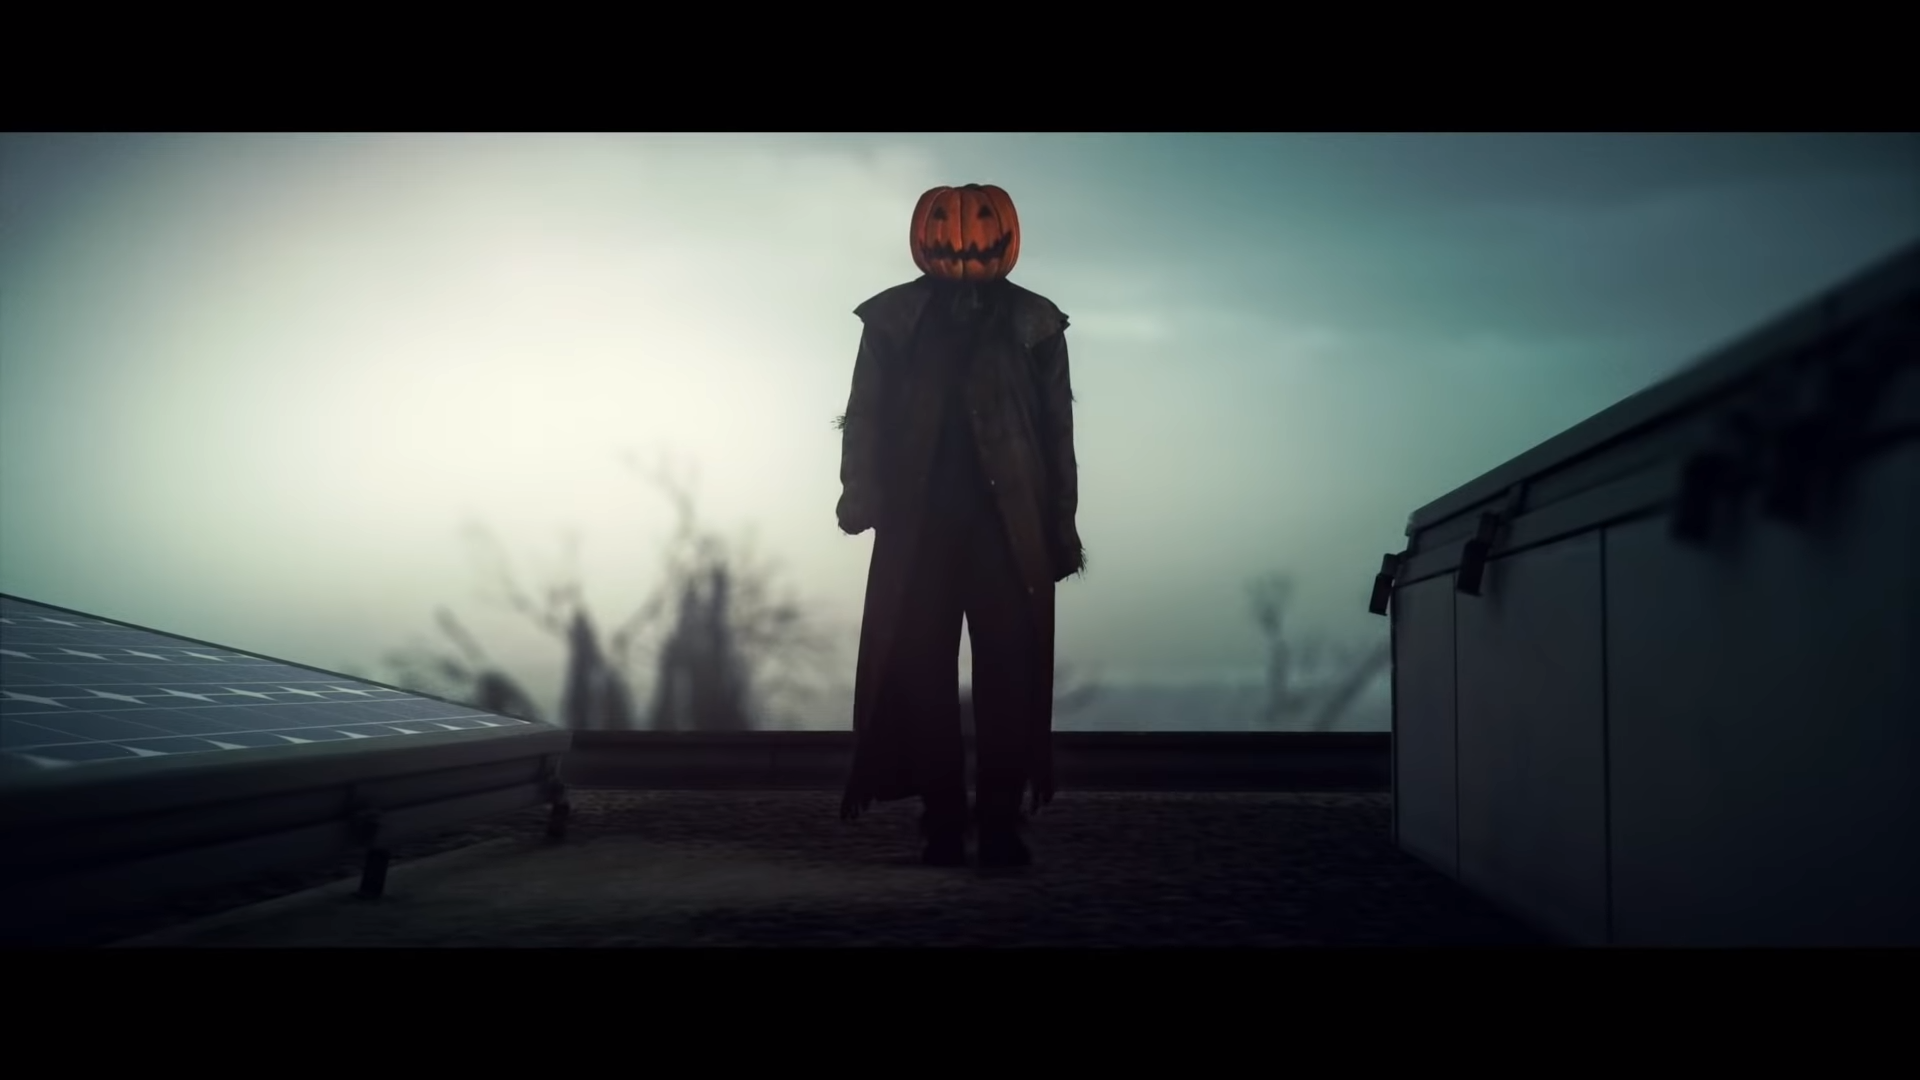 Agent 47 as a creepy pumpkin man in Hitman 2